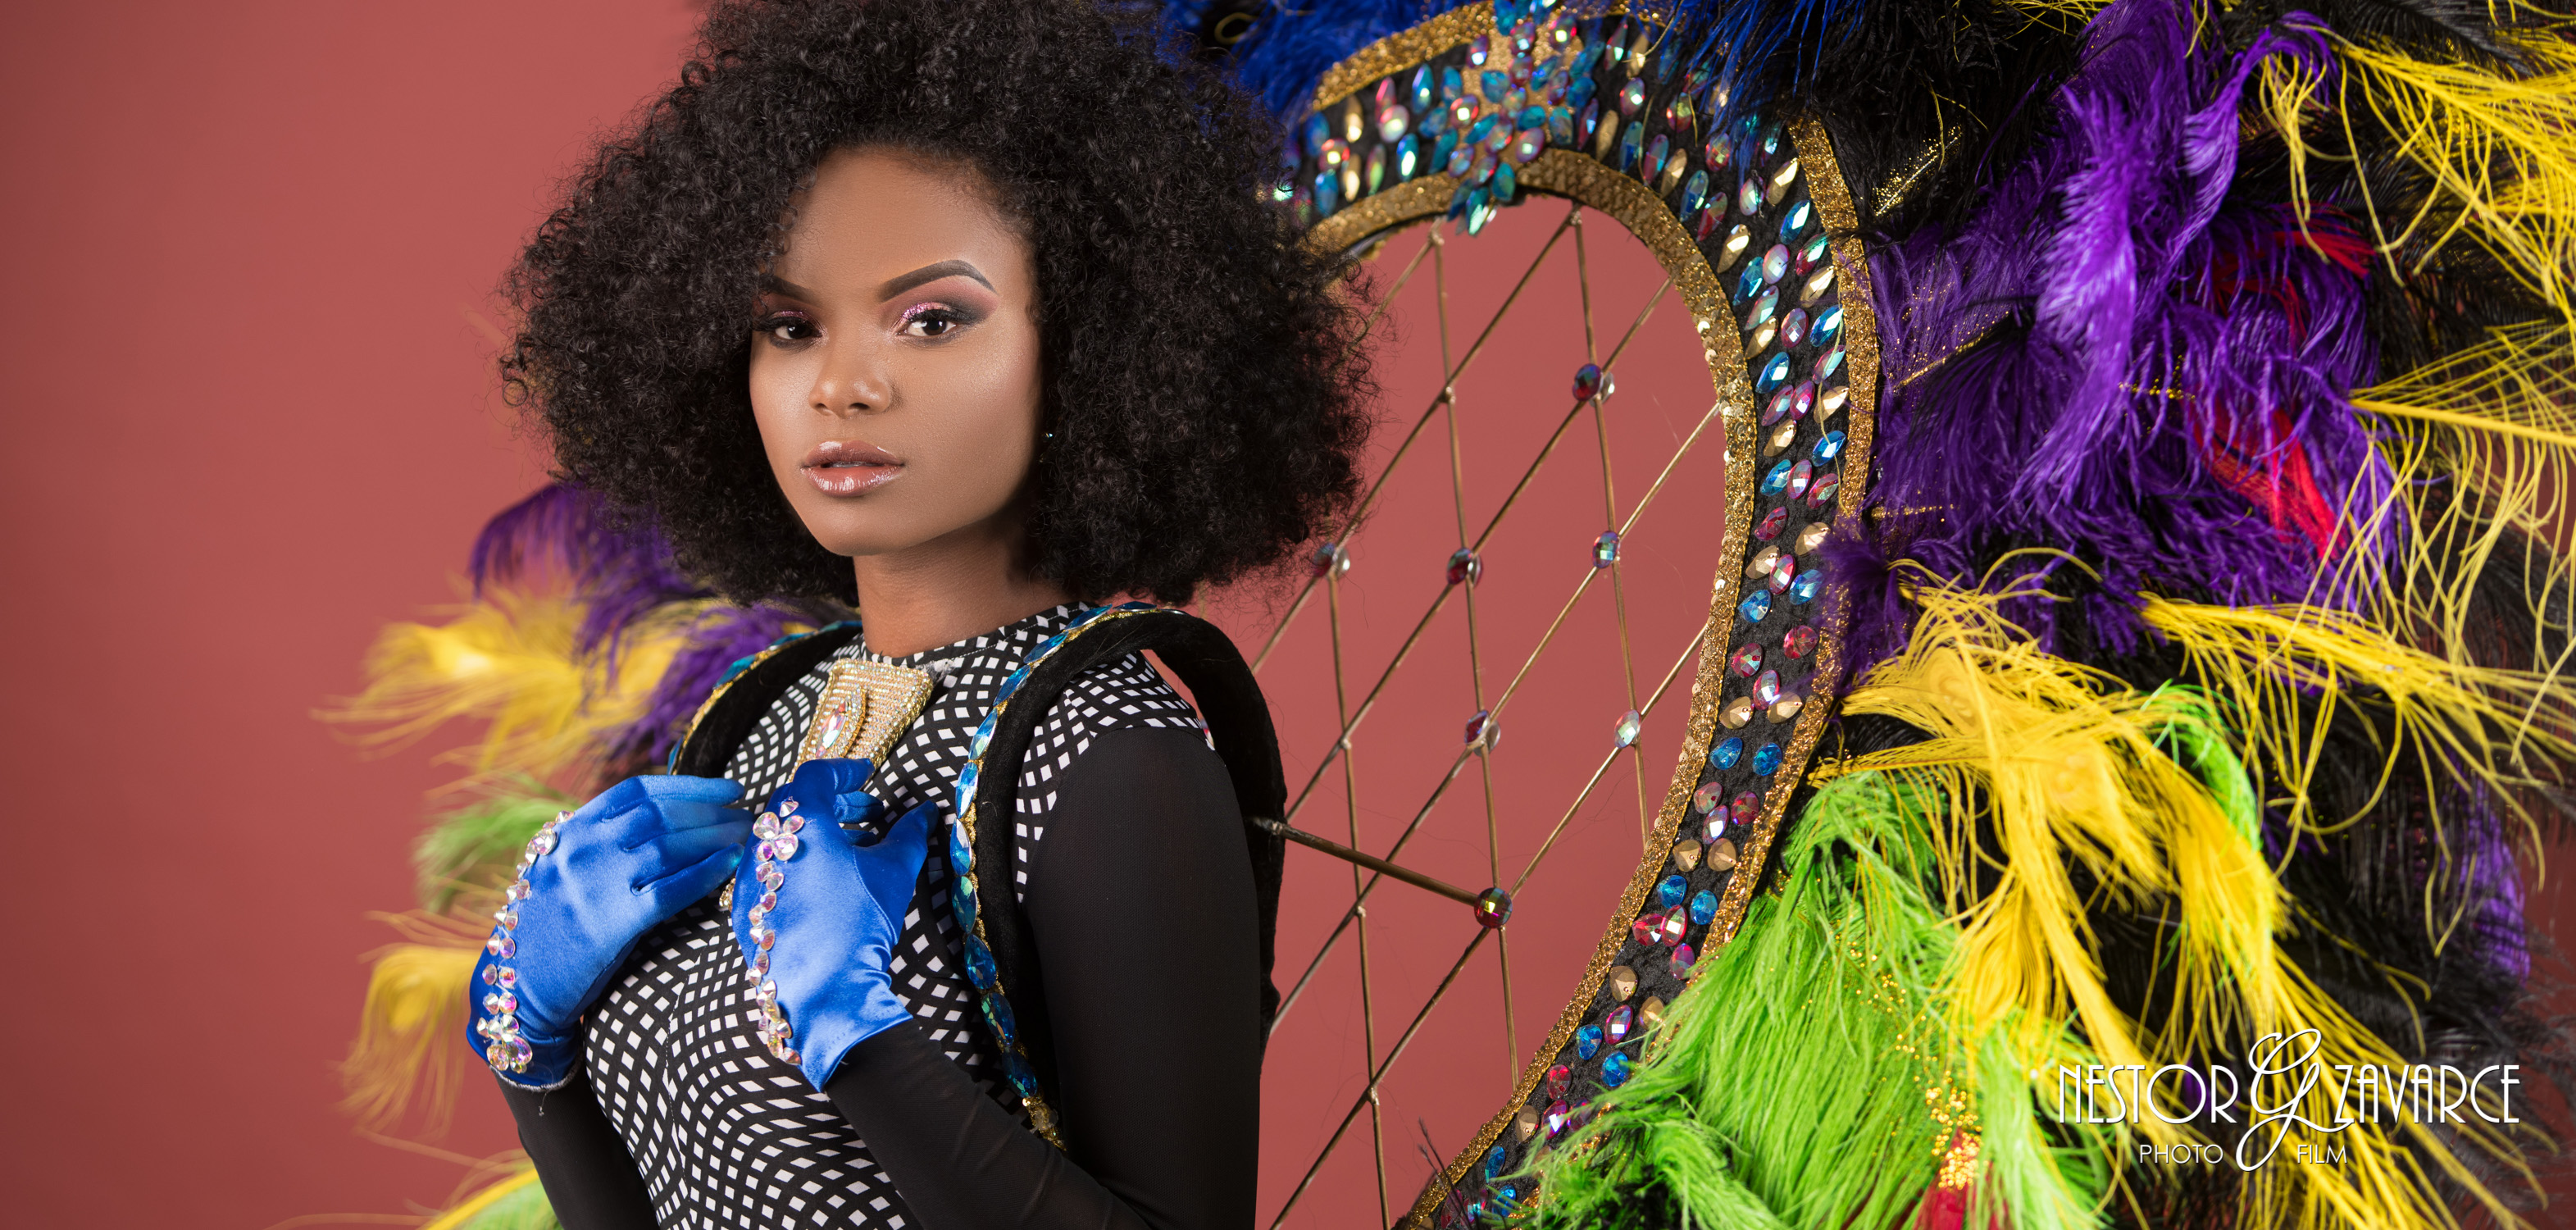 Miss Curacao Teenager 2019 | Samba shoot - Nestor G Zavarce Photo & Film